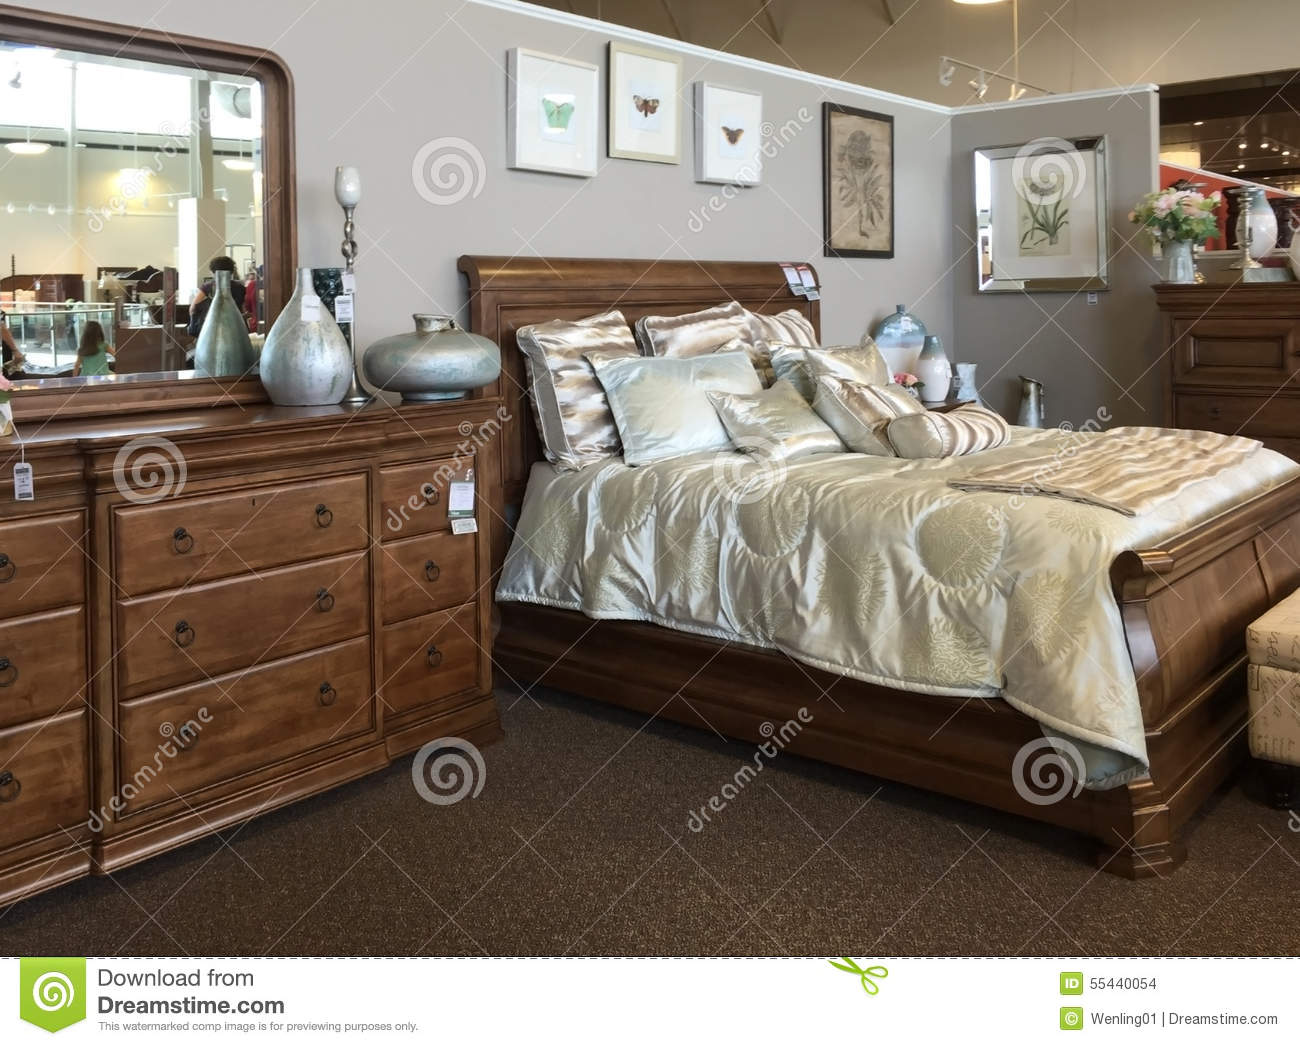 Bedroom furniture selling editorial stock image image for Places to sell furniture online